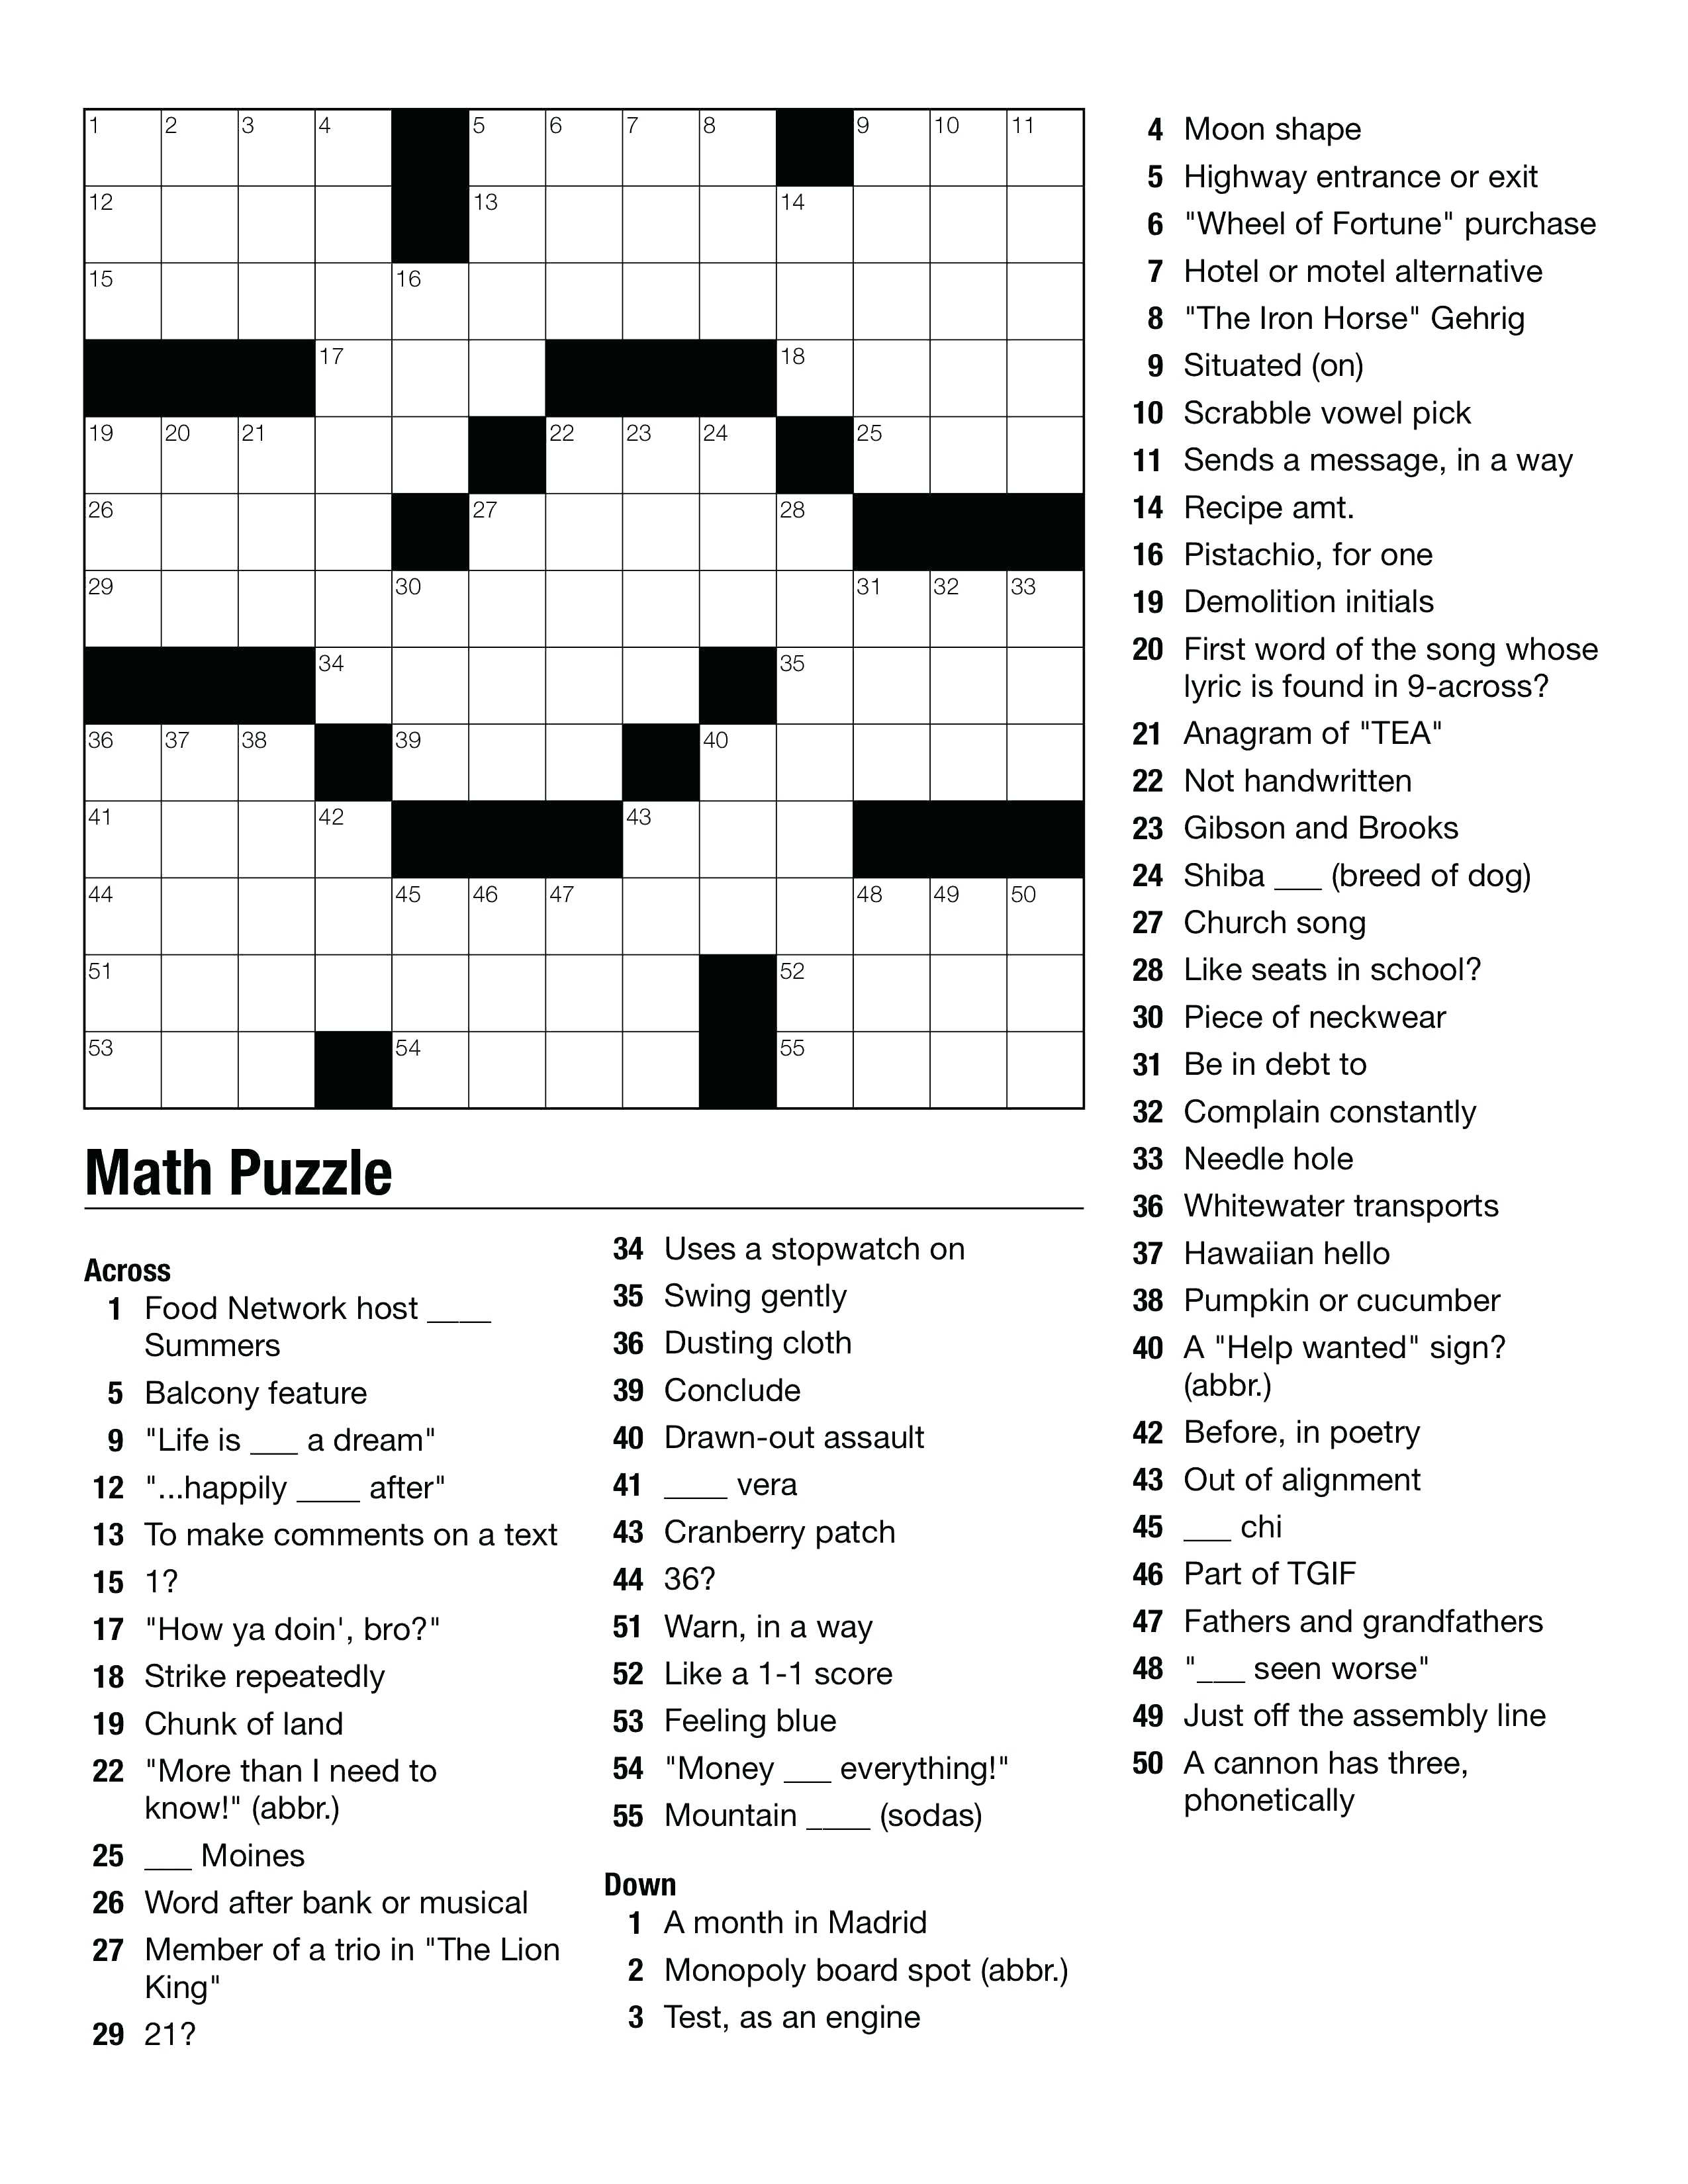 Geometry Puzzles Math – Upskill.club - Free Printable Crossword Puzzles High School